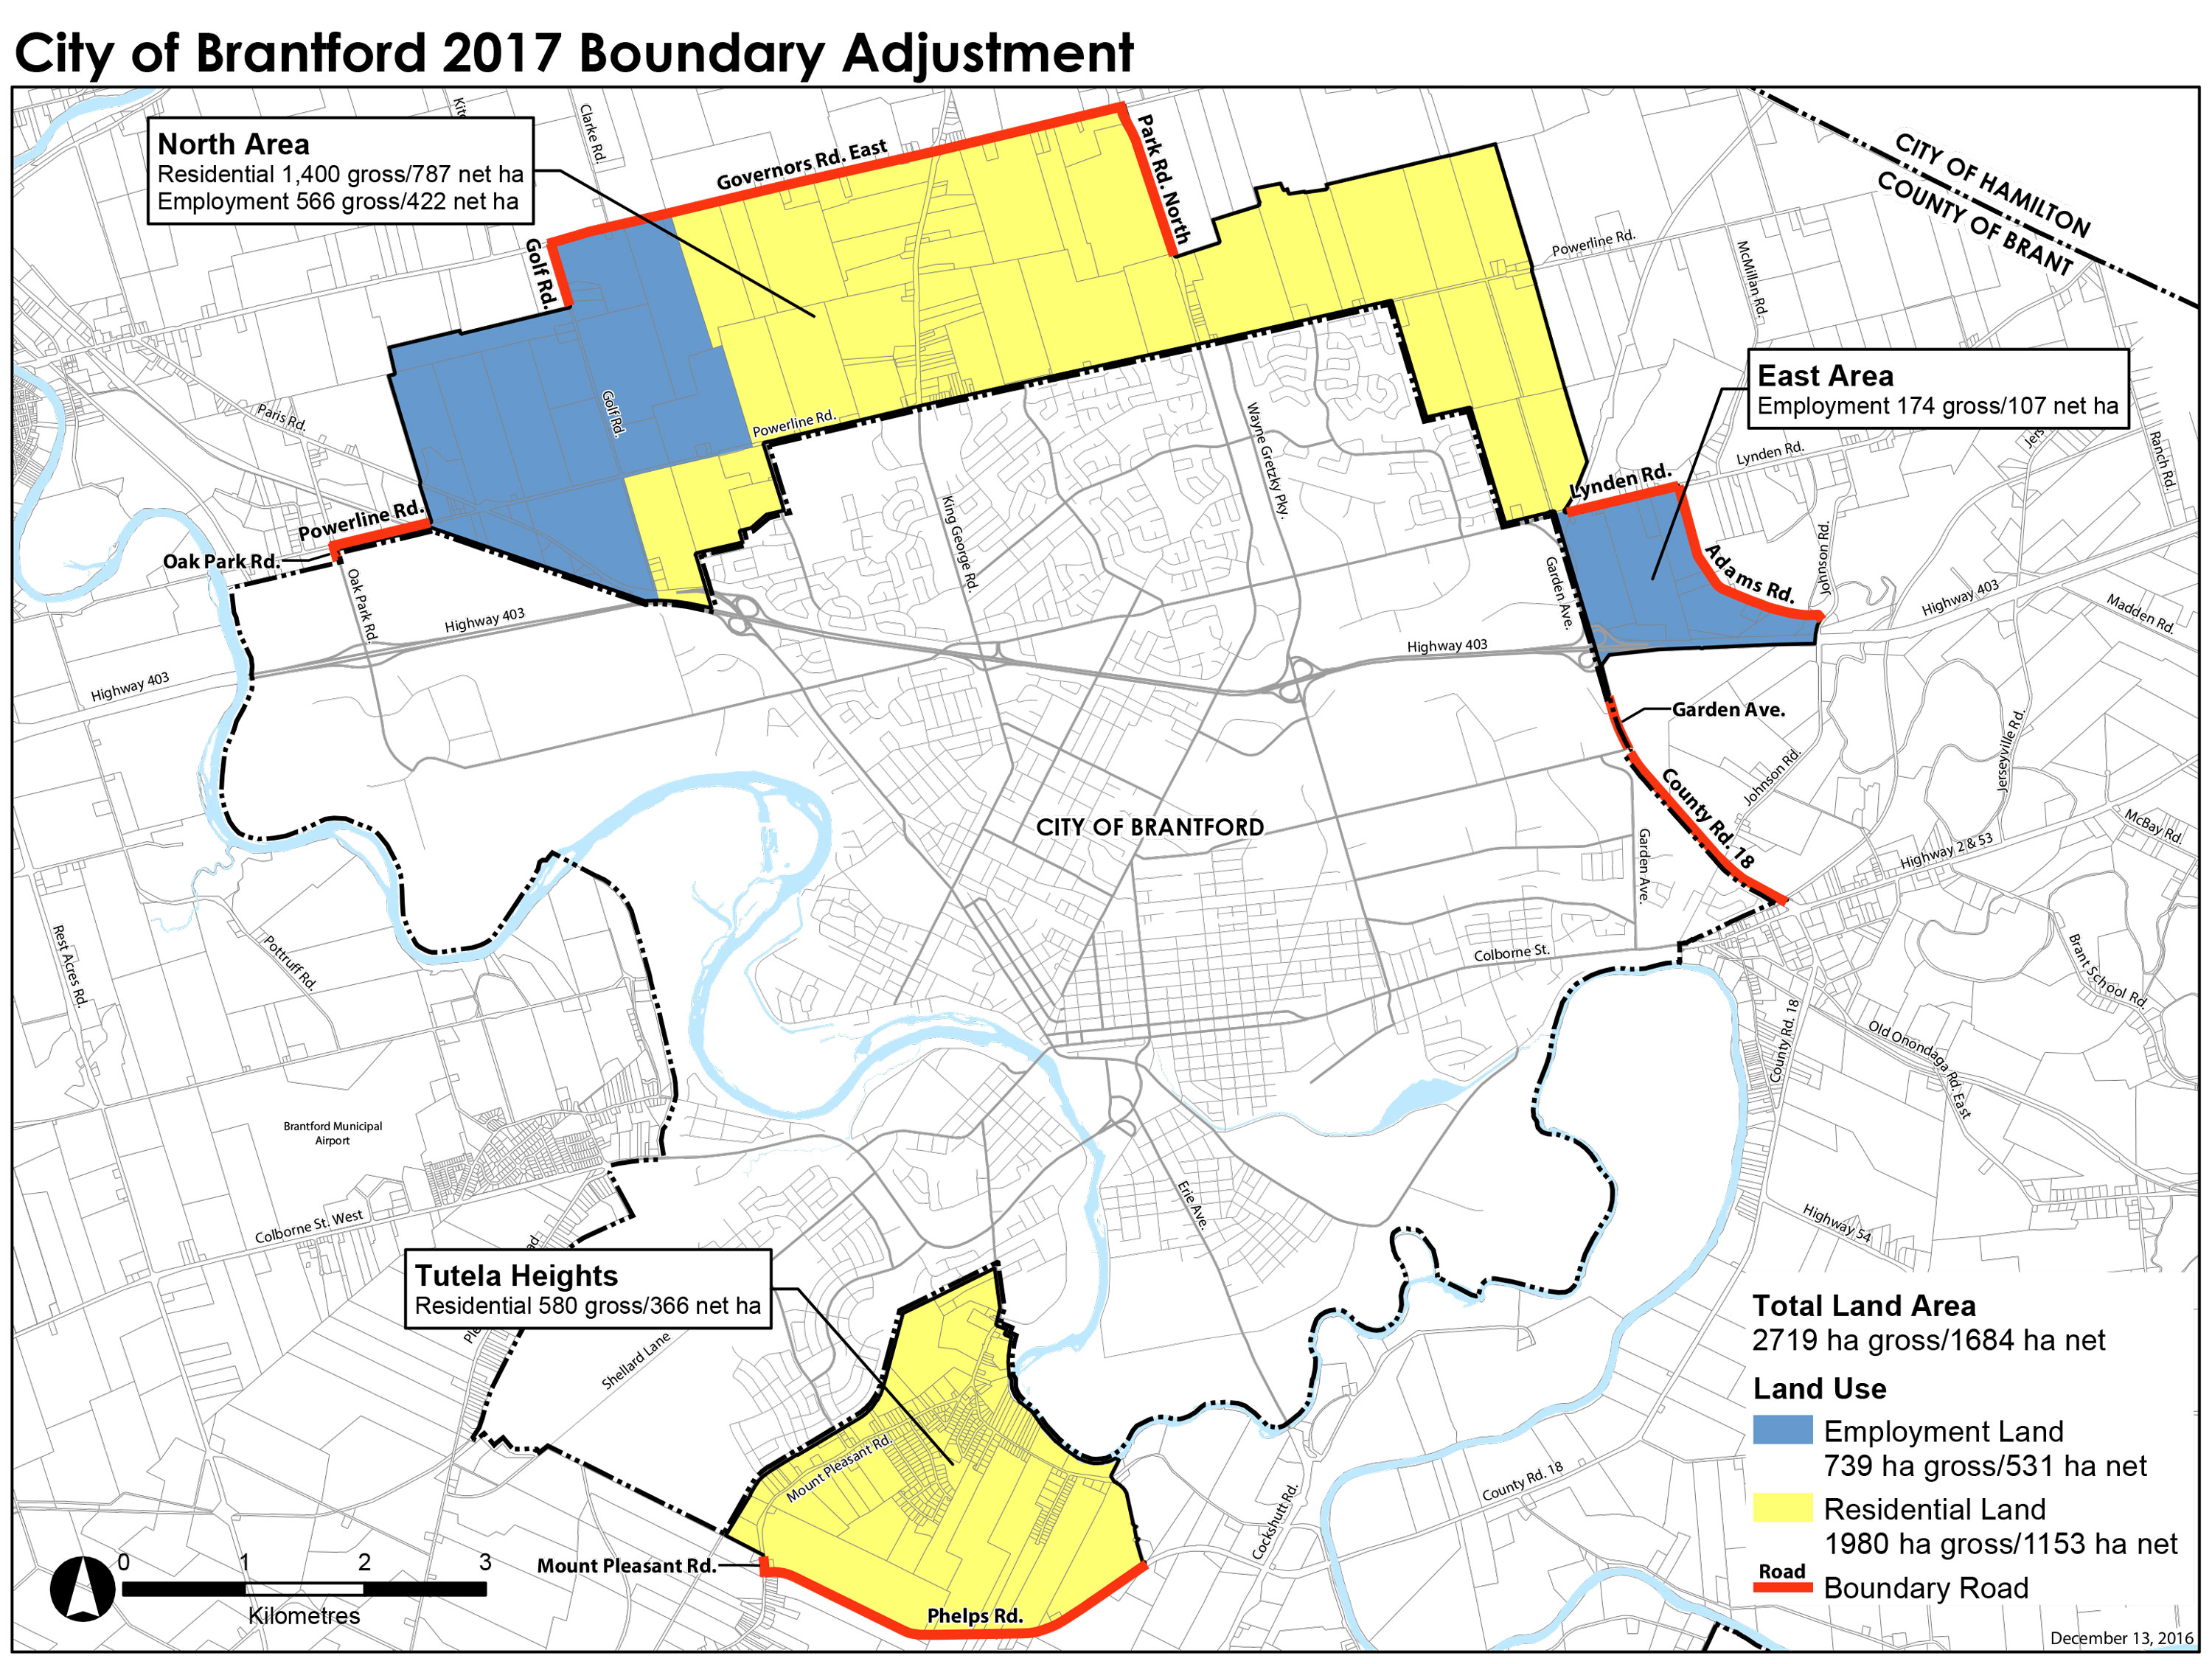 Boundary adjustment brant county on january 6 2016 county of brant mayor ron eddy and city of brantford mayor chris friel signed a memorandum of understanding that established the basis gumiabroncs Gallery